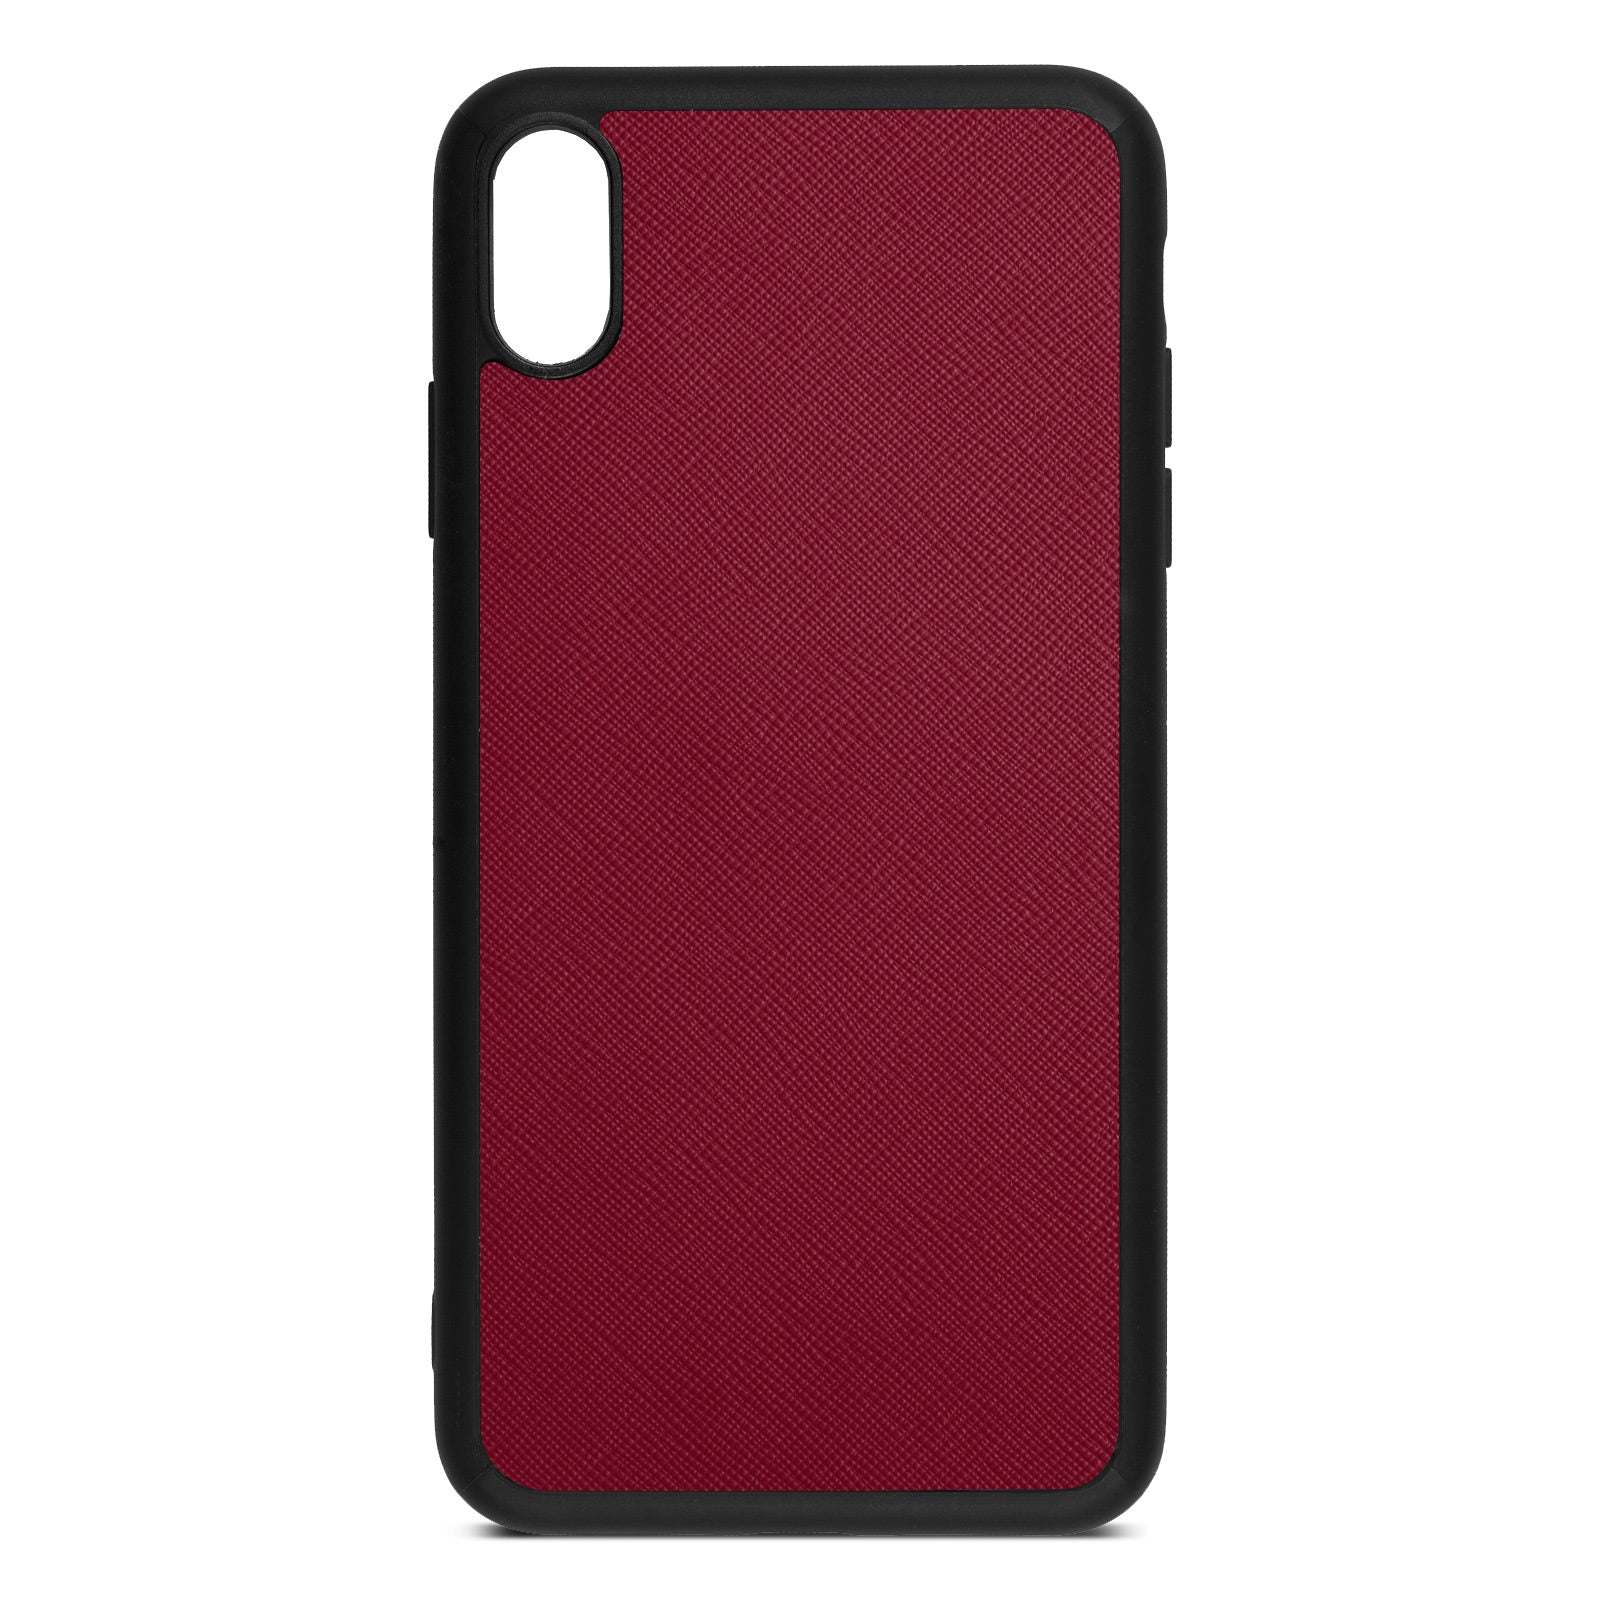 Blank Personalised Dark Red Saffiano Leather iPhone XS Max Case